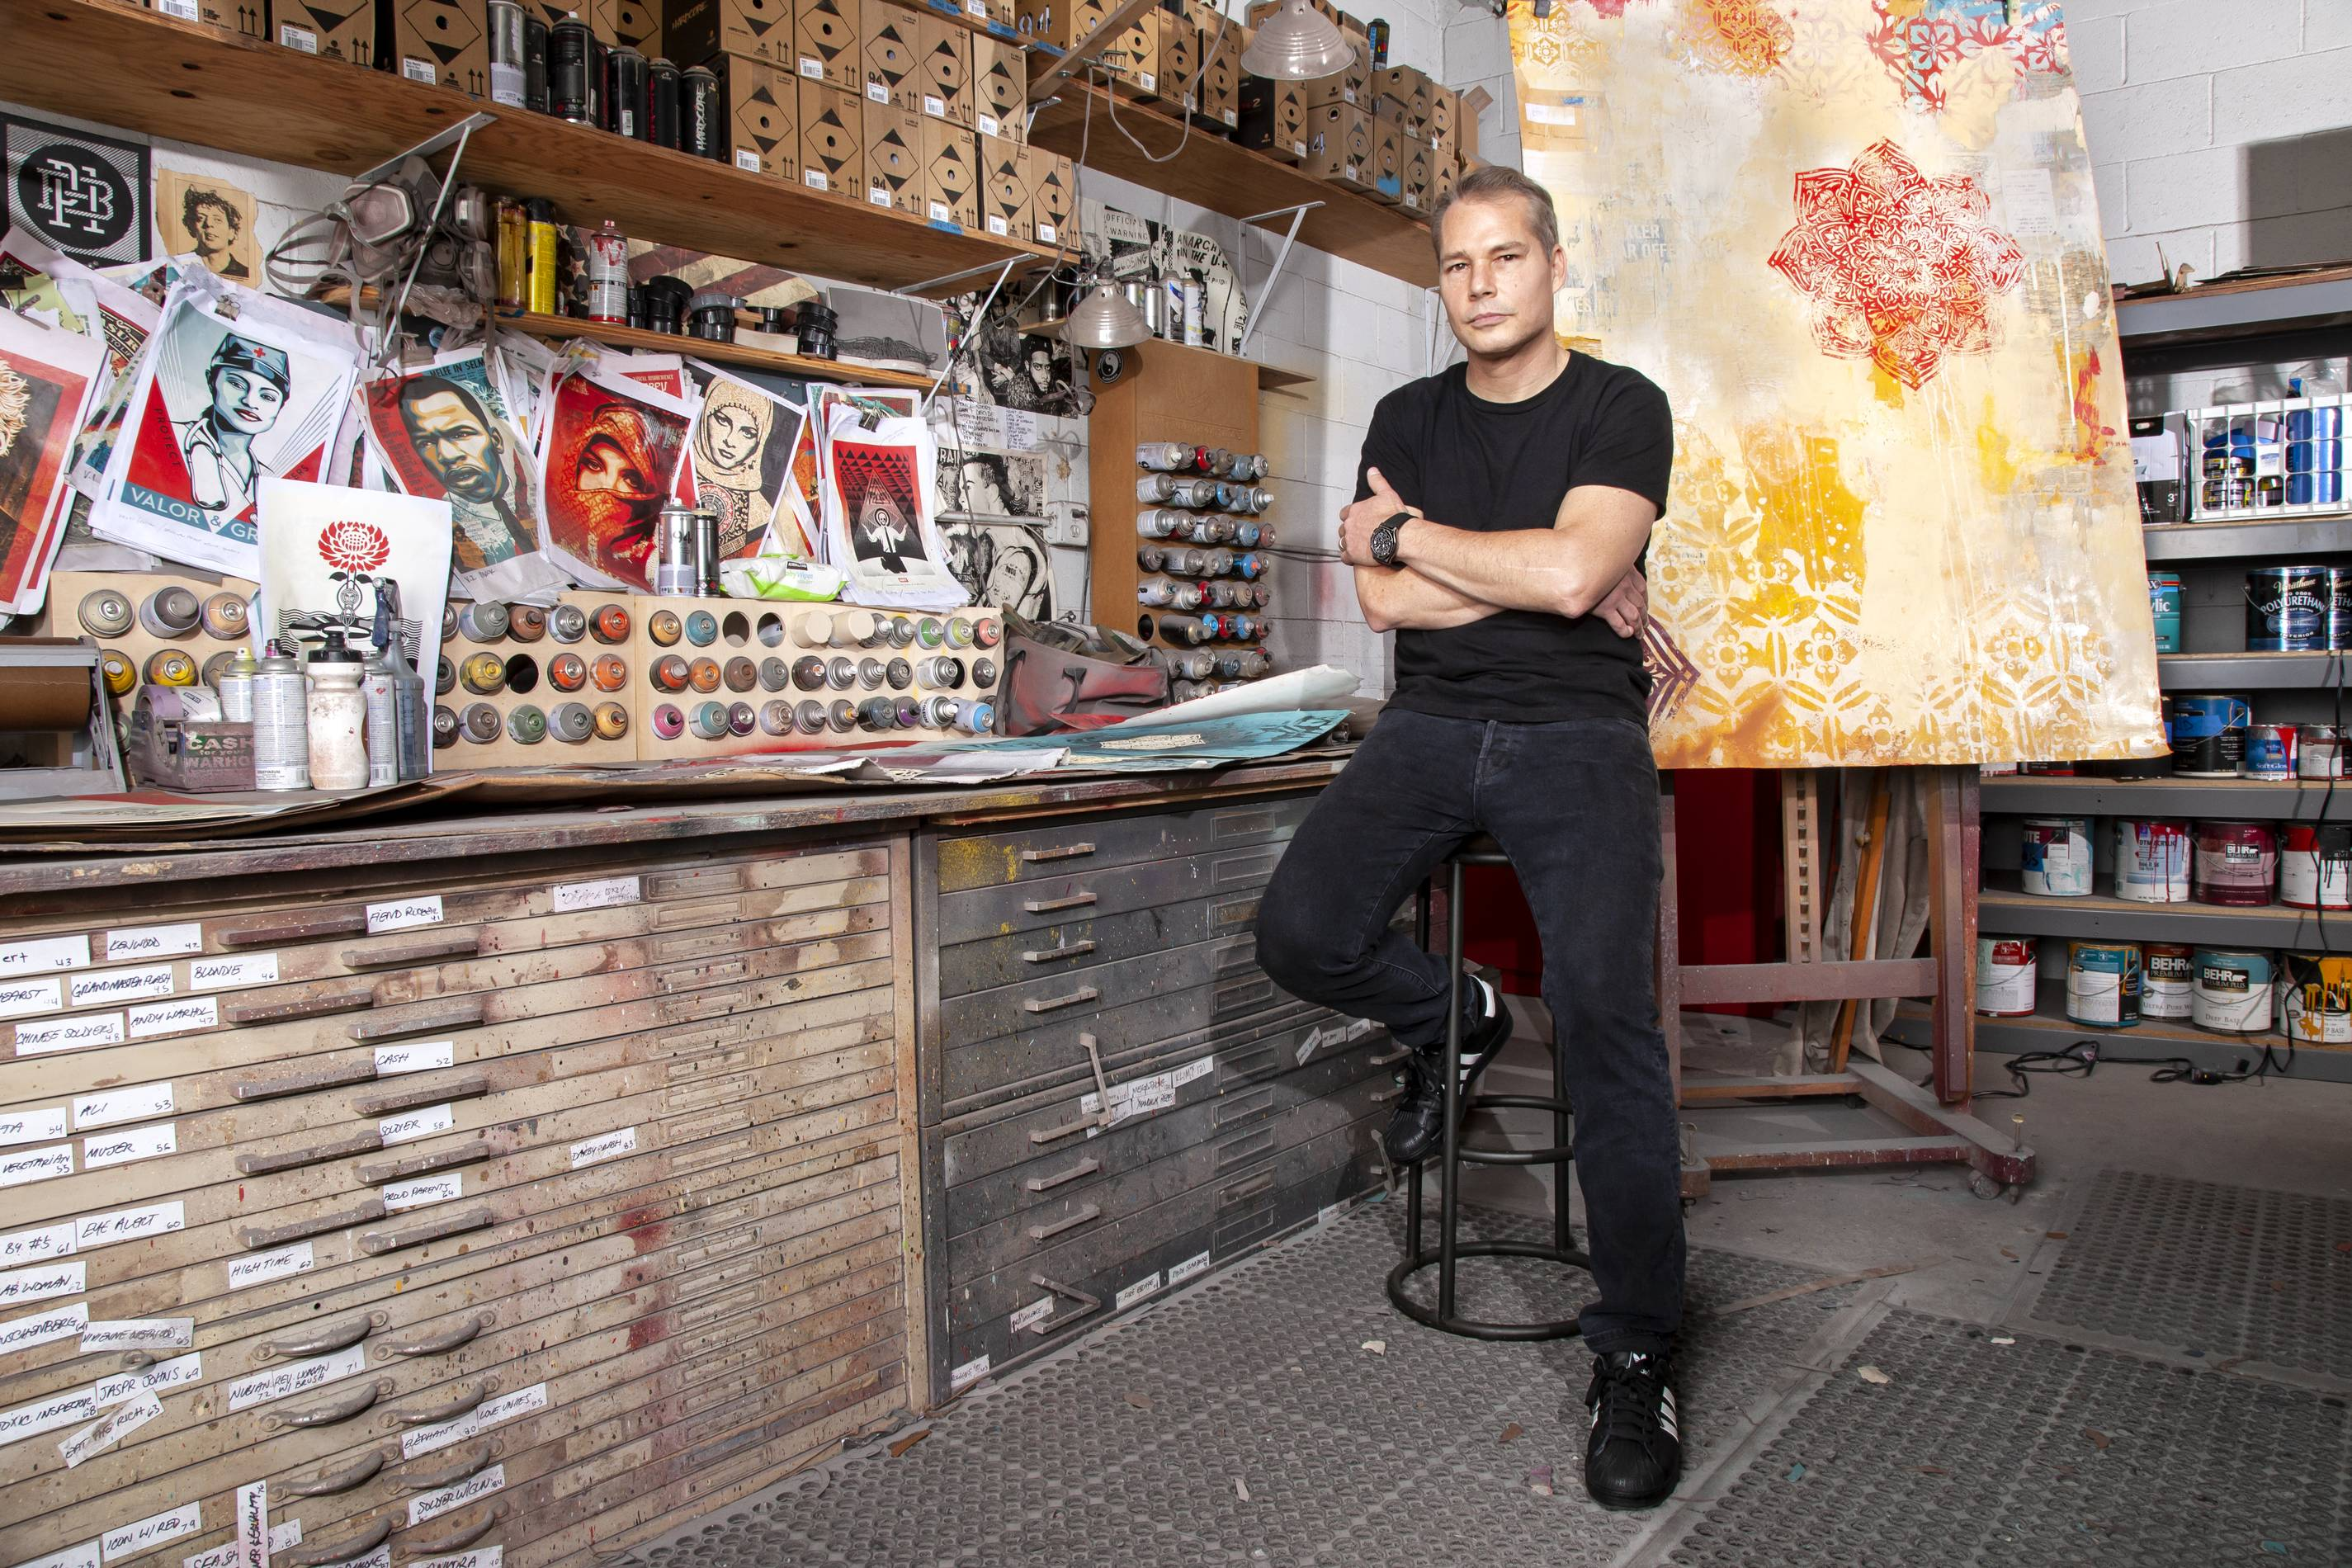 Shepard Fairey in his studio wearing Hublot watch collaboration